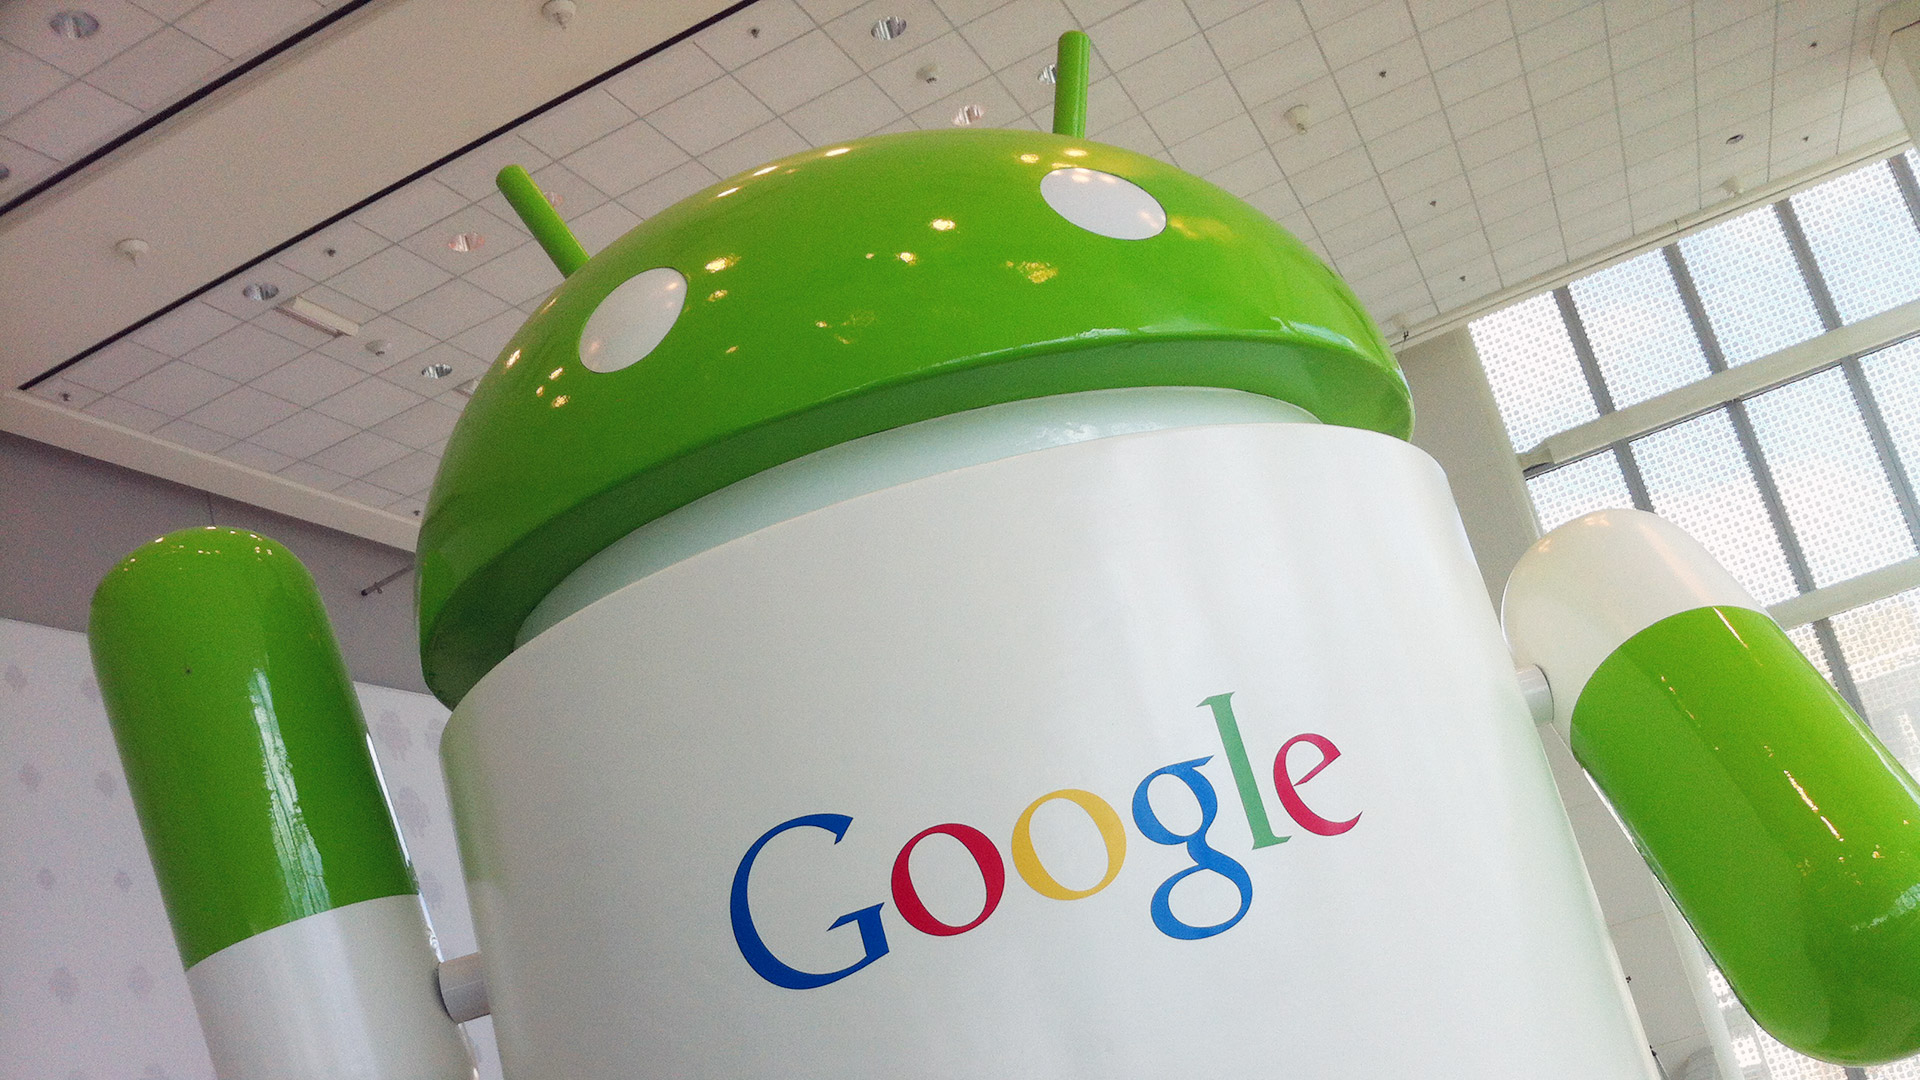 Location intelligence companies react to new Android privacy controls